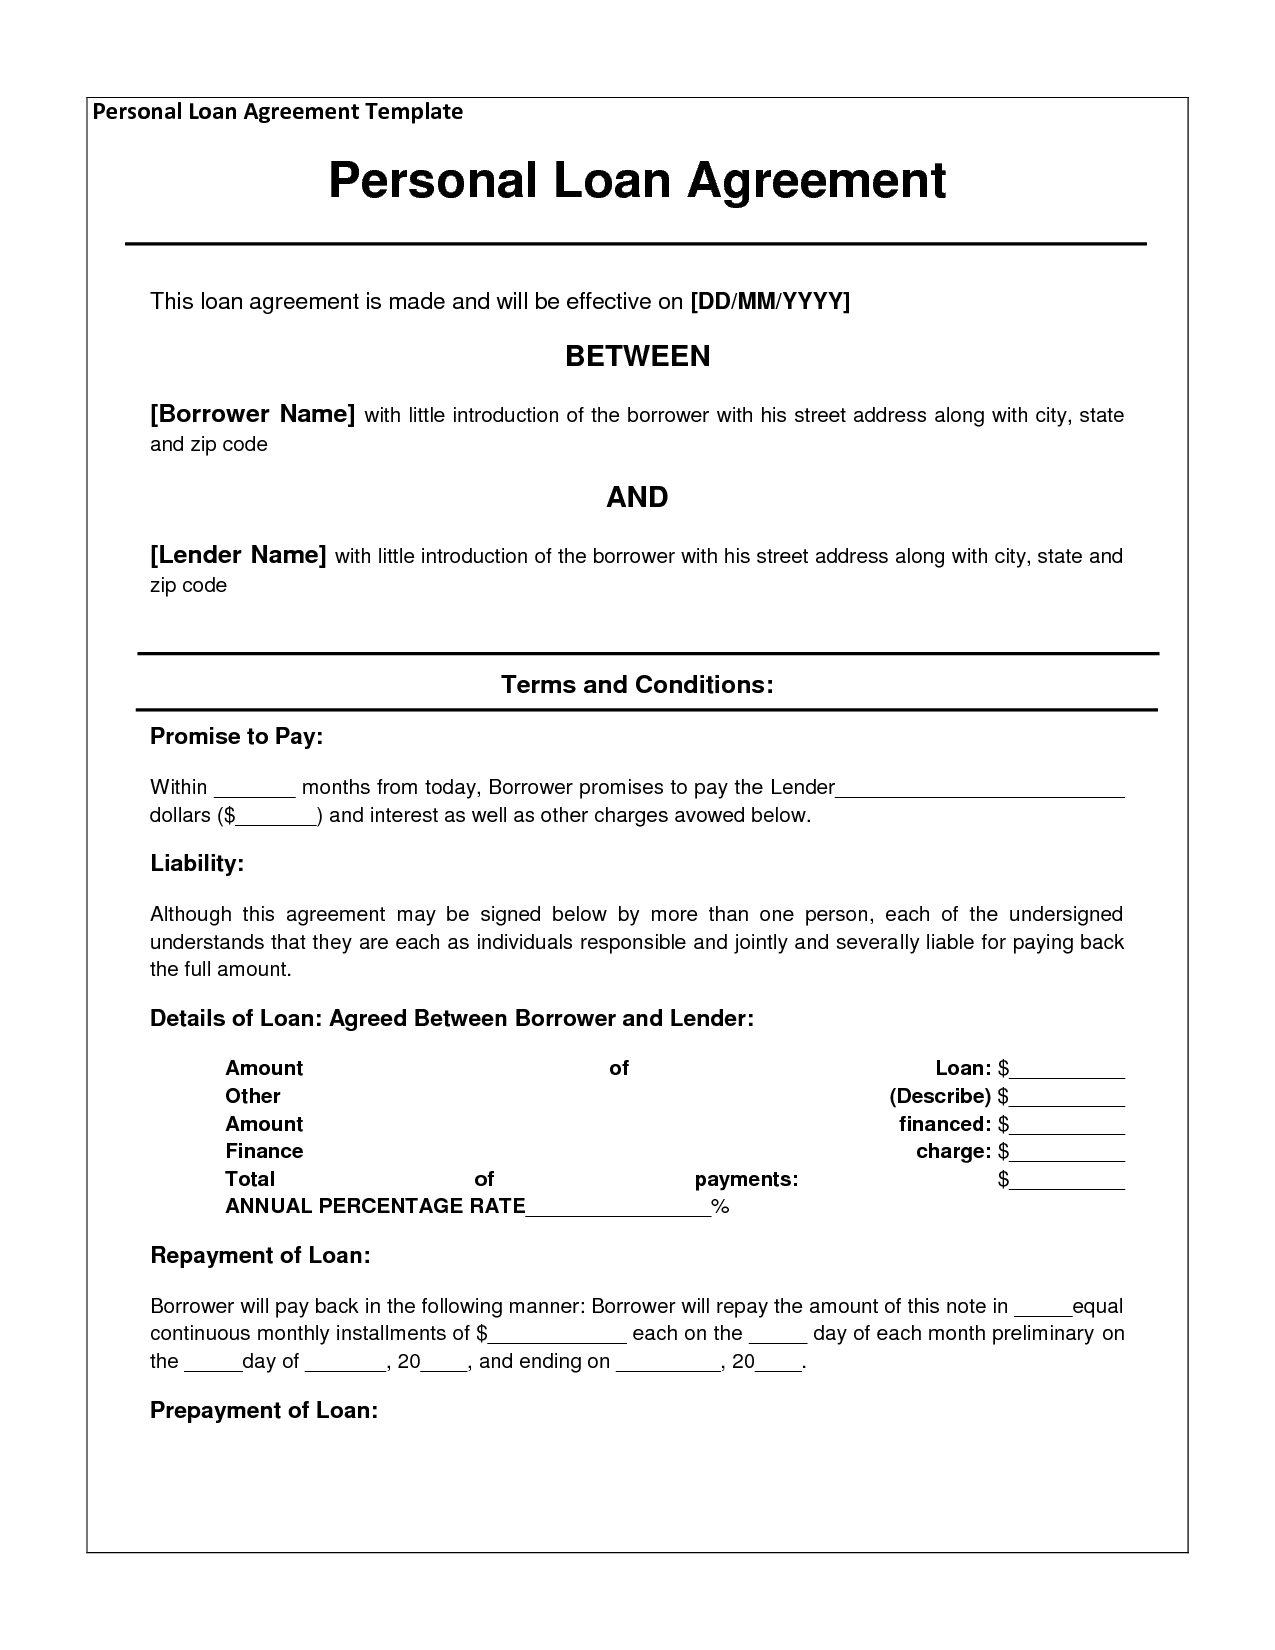 Free personal loan agreement form template 1000 Approved in 2 – Sample Loan Documents